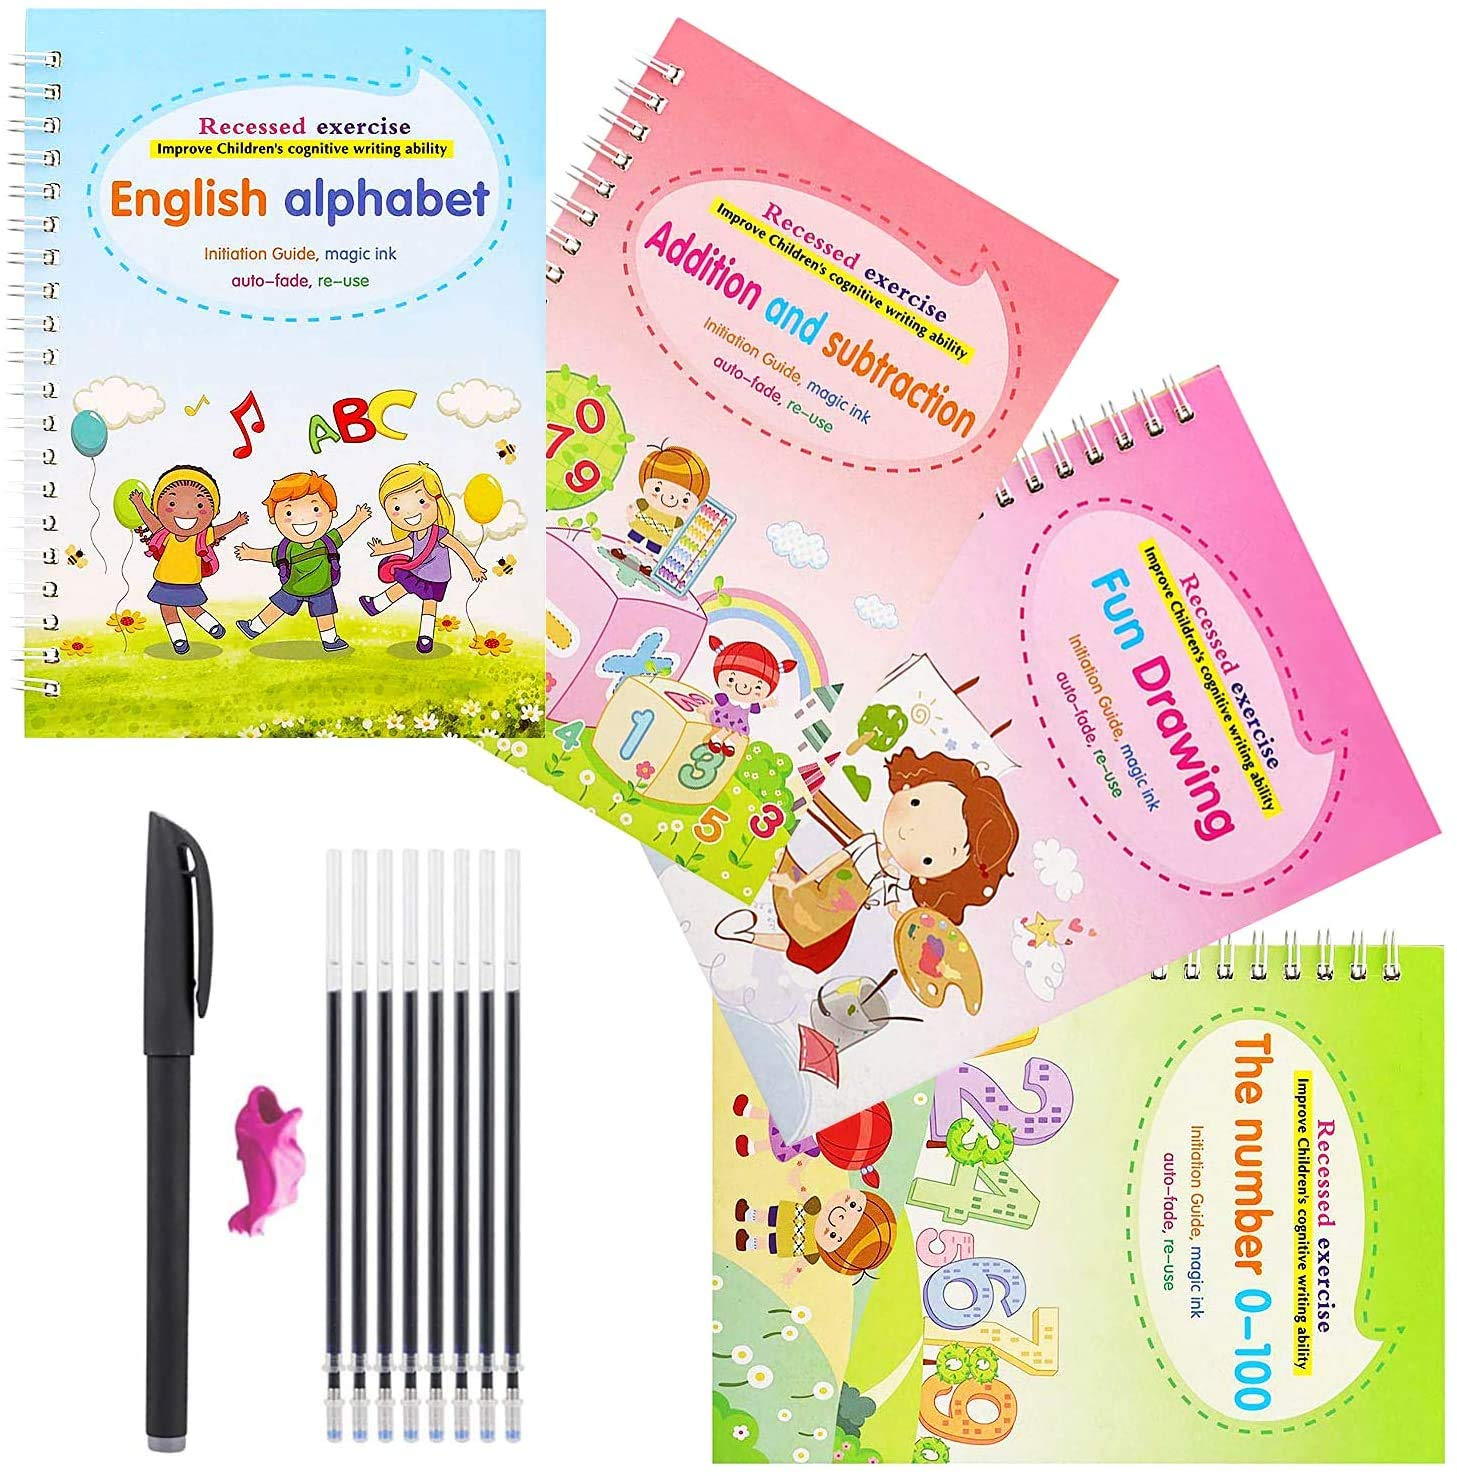 4pcs Magic Practice Copybook for Kids, Magic Calligraphy That Can Be Reused Handwriting Copybook Tracing Book Set for Kid Calligraphic Letter Writing Drawing Mathematics (Alphabet Book with Pen)